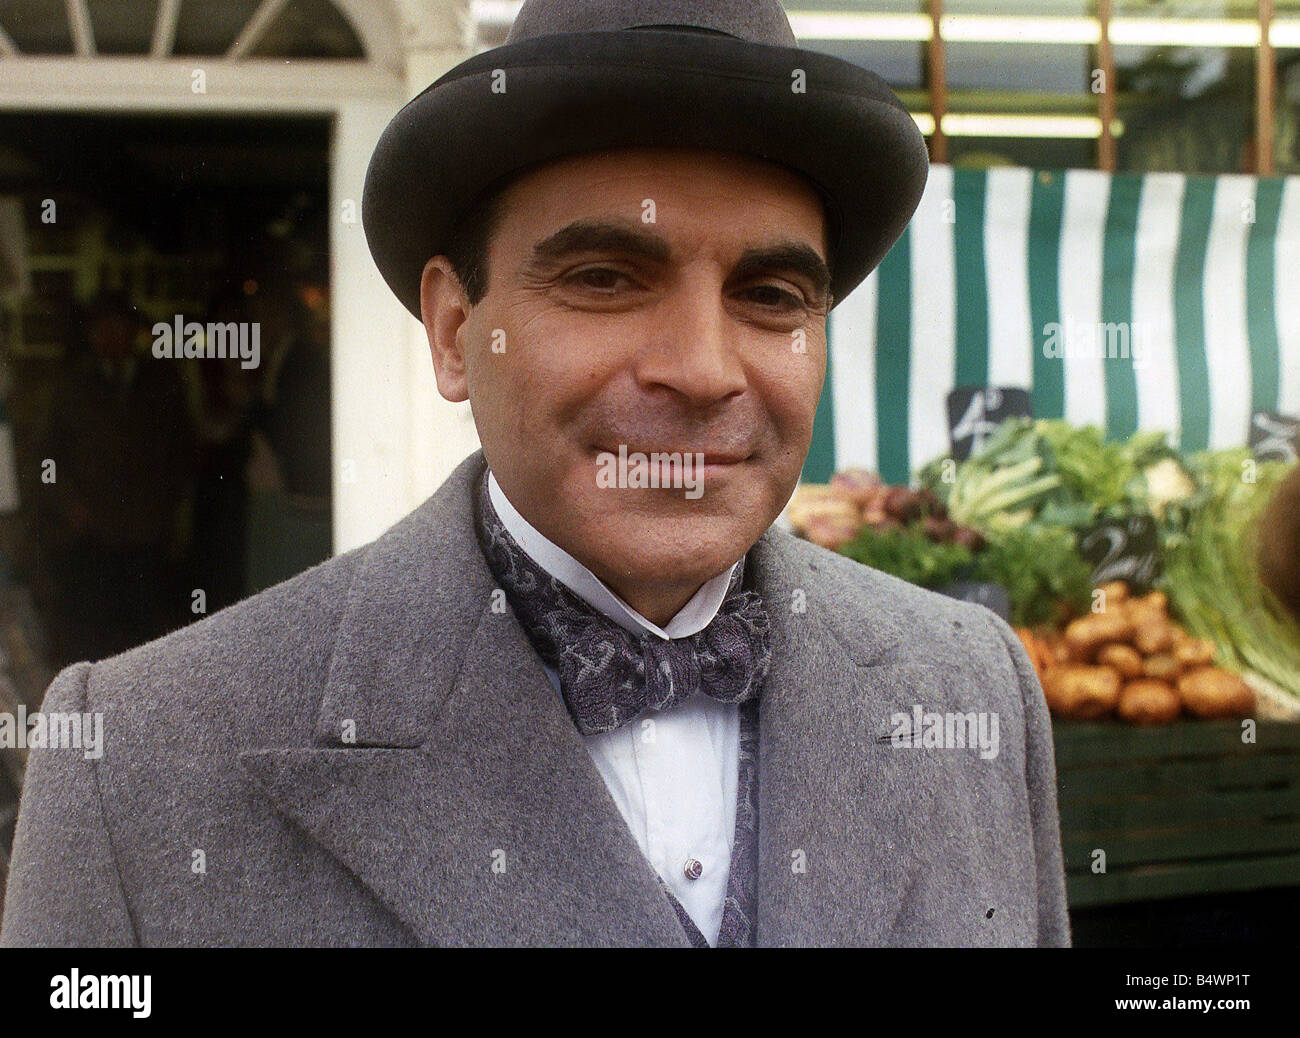 David Suchet as Hercule Poirot - Stock Image